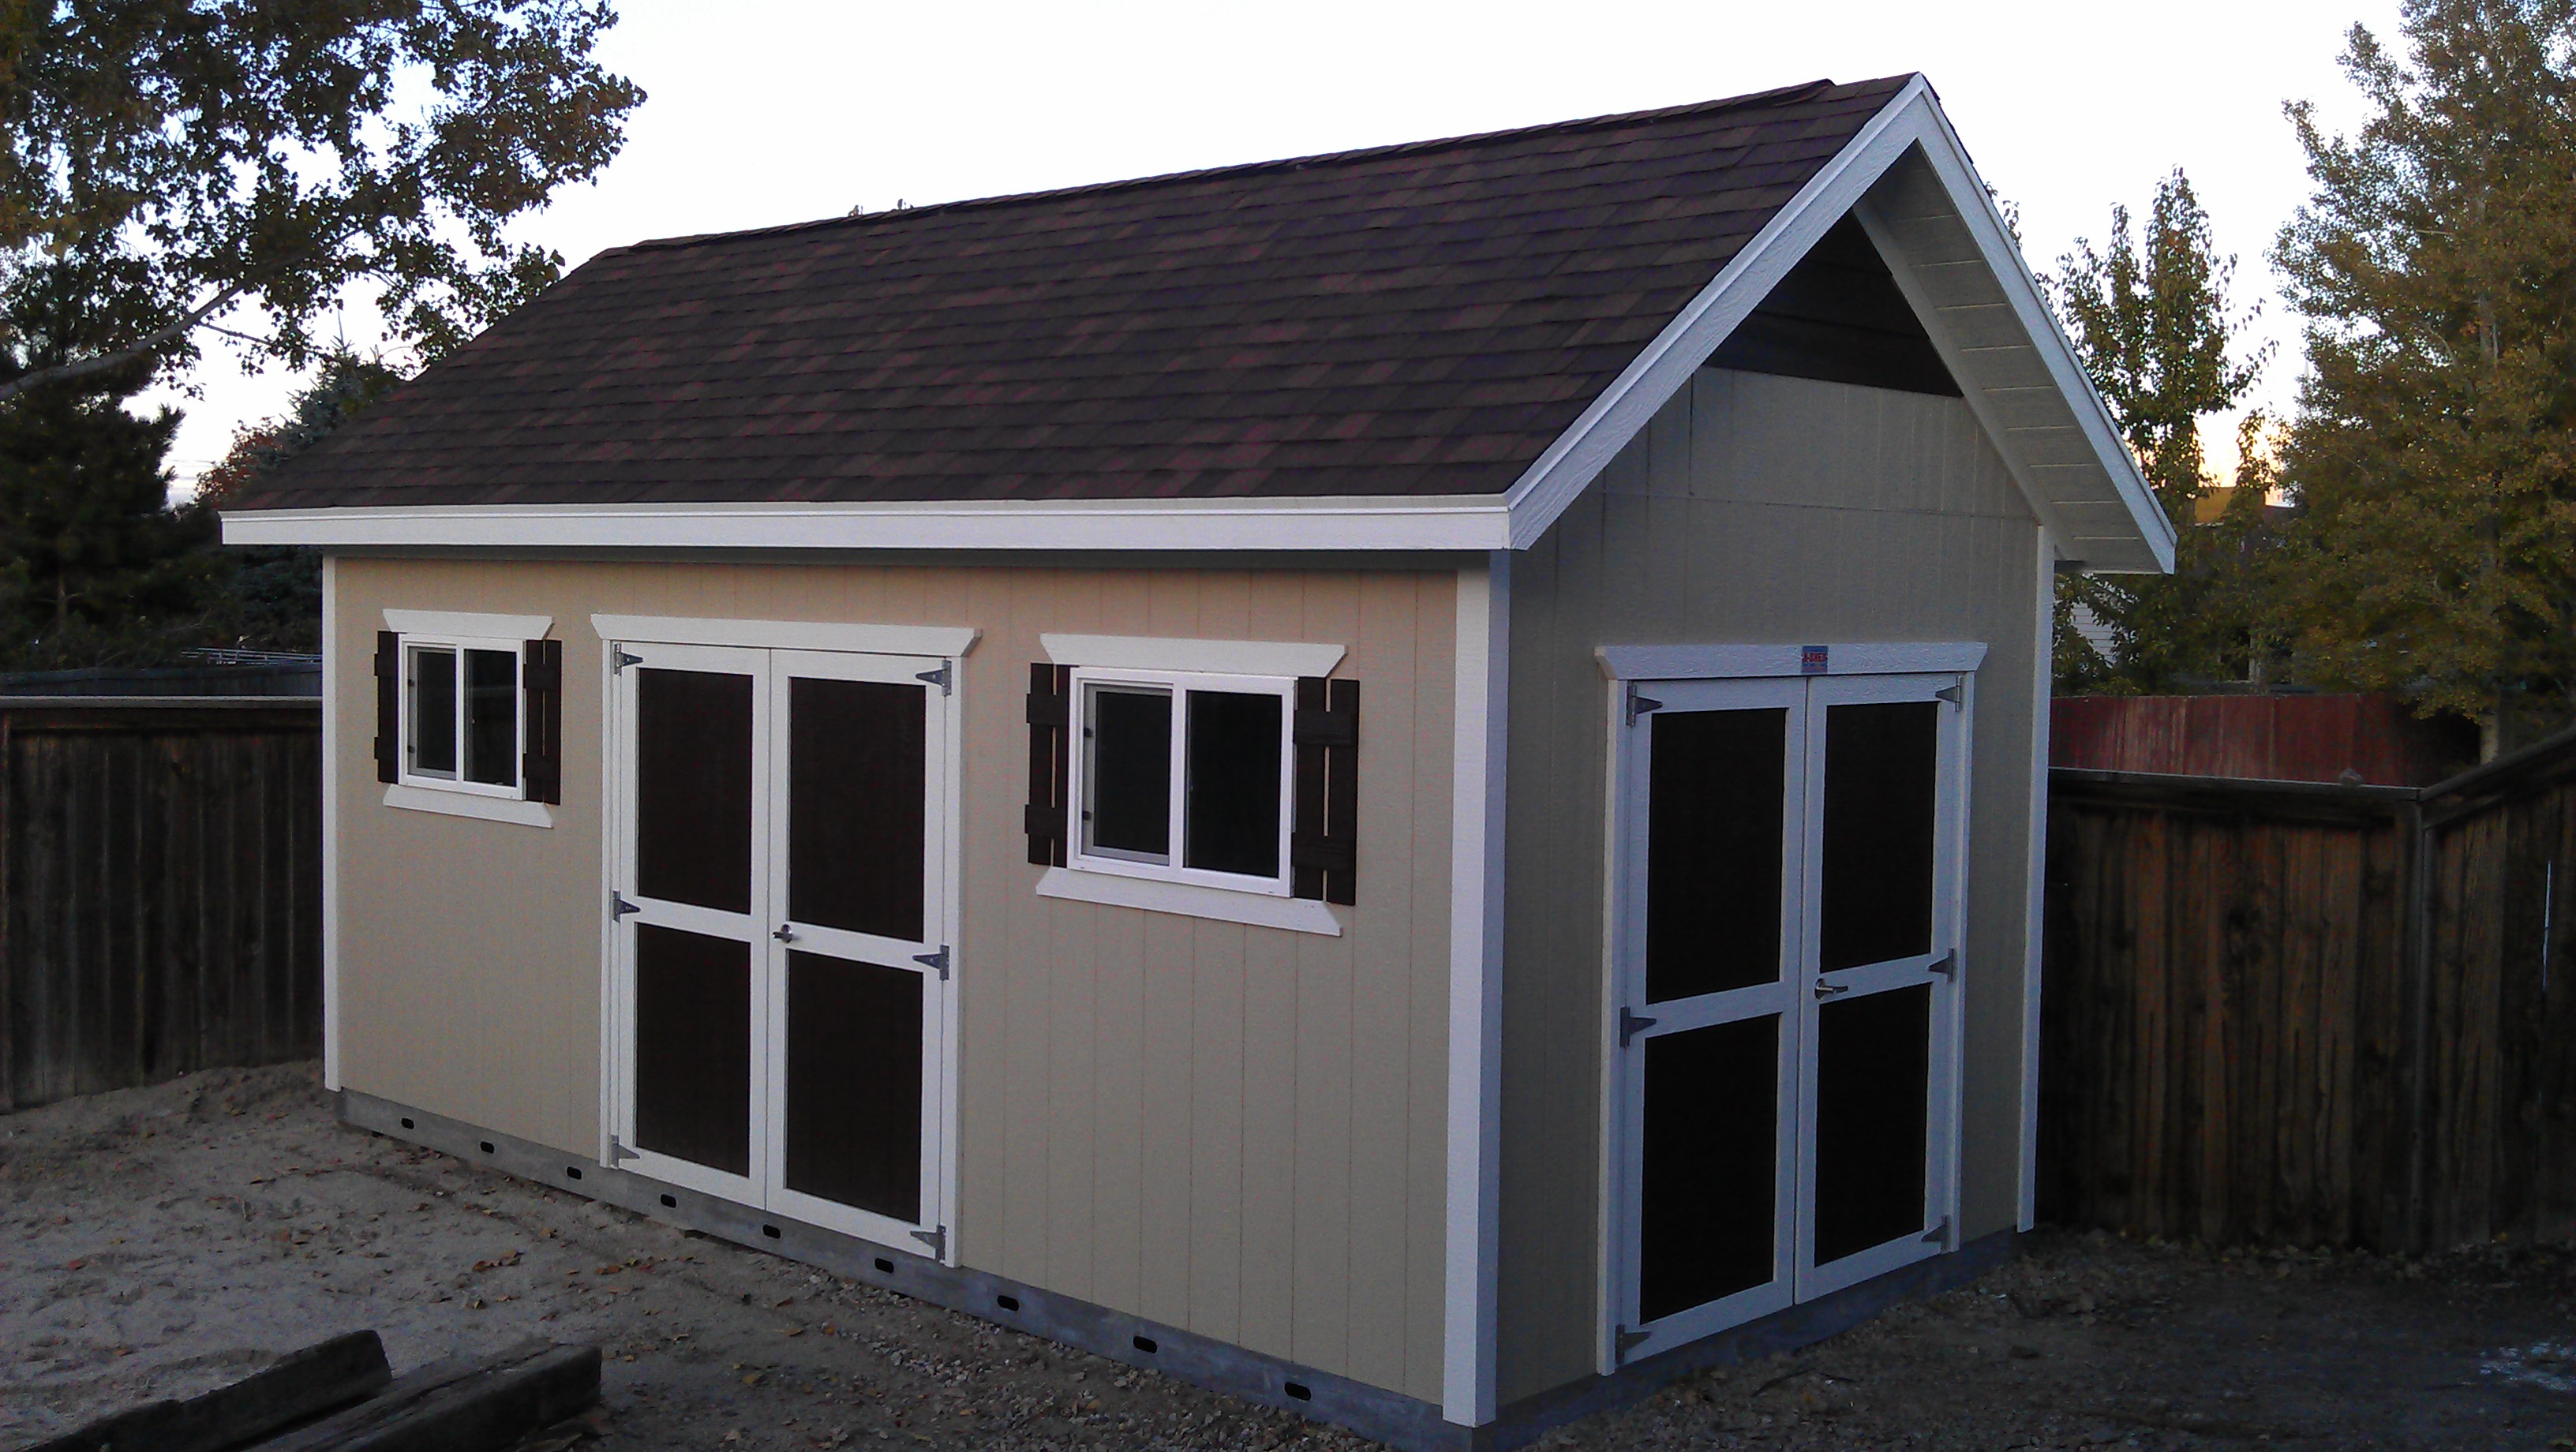 usa charming sheds kwp appeal garden curb functional products